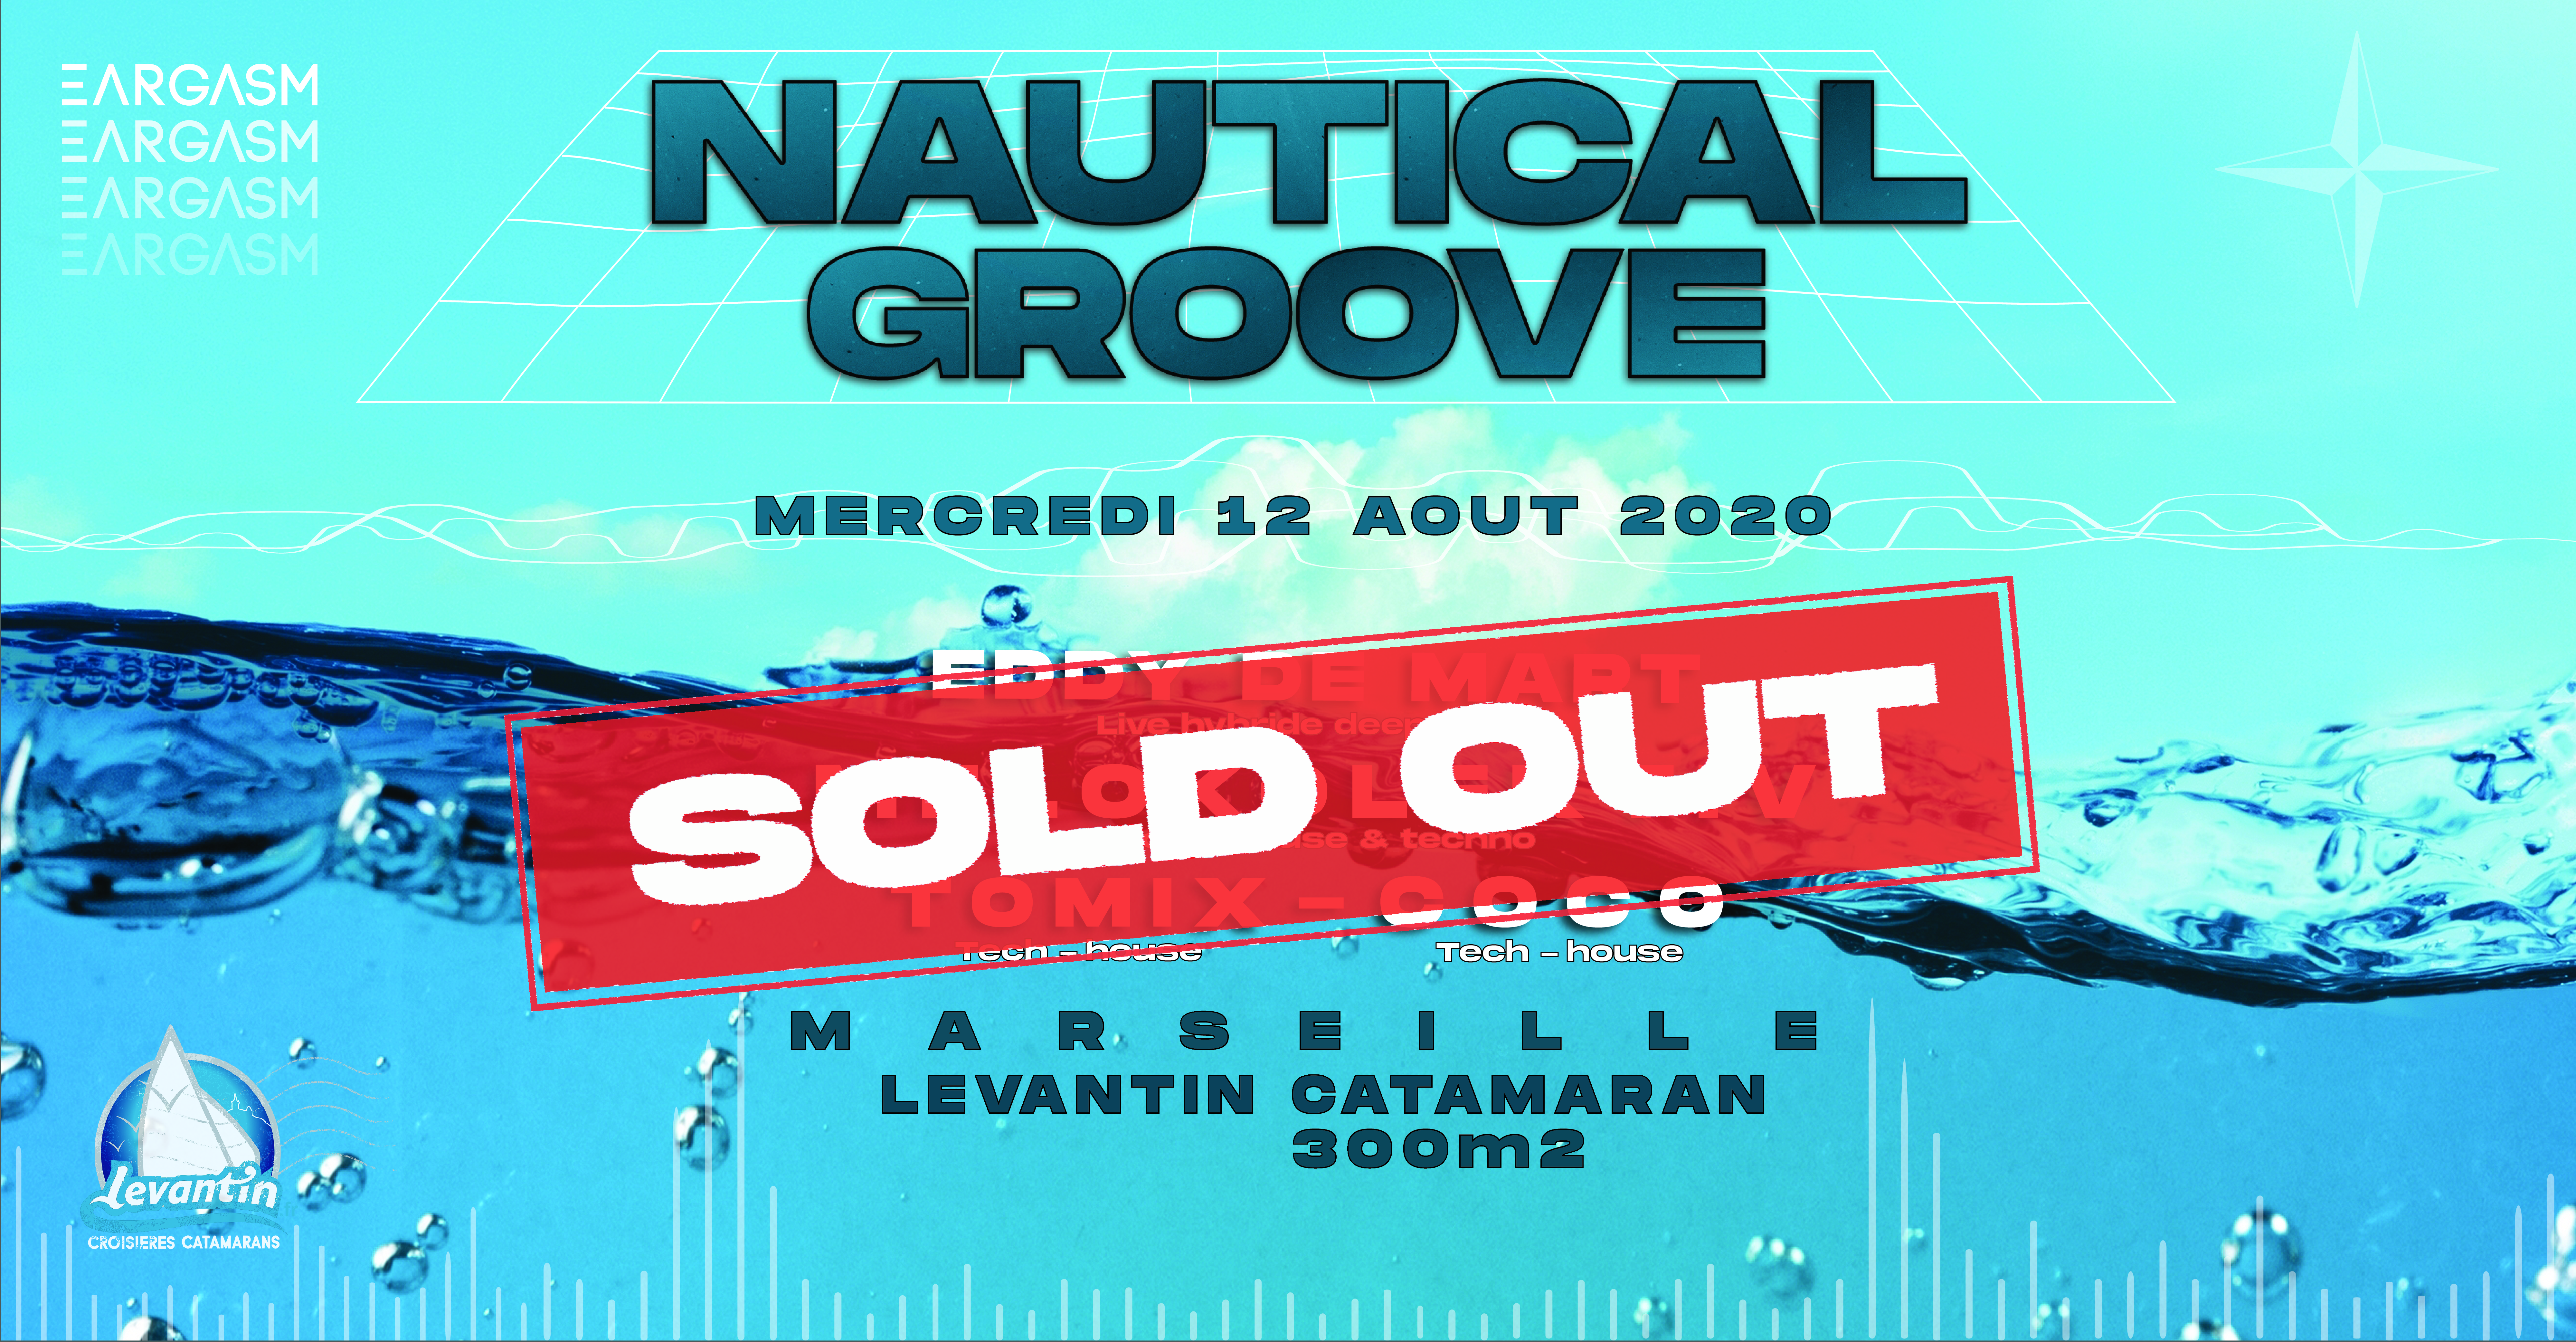 Nautical groove #2 [BOAT PARTY] By eargasm